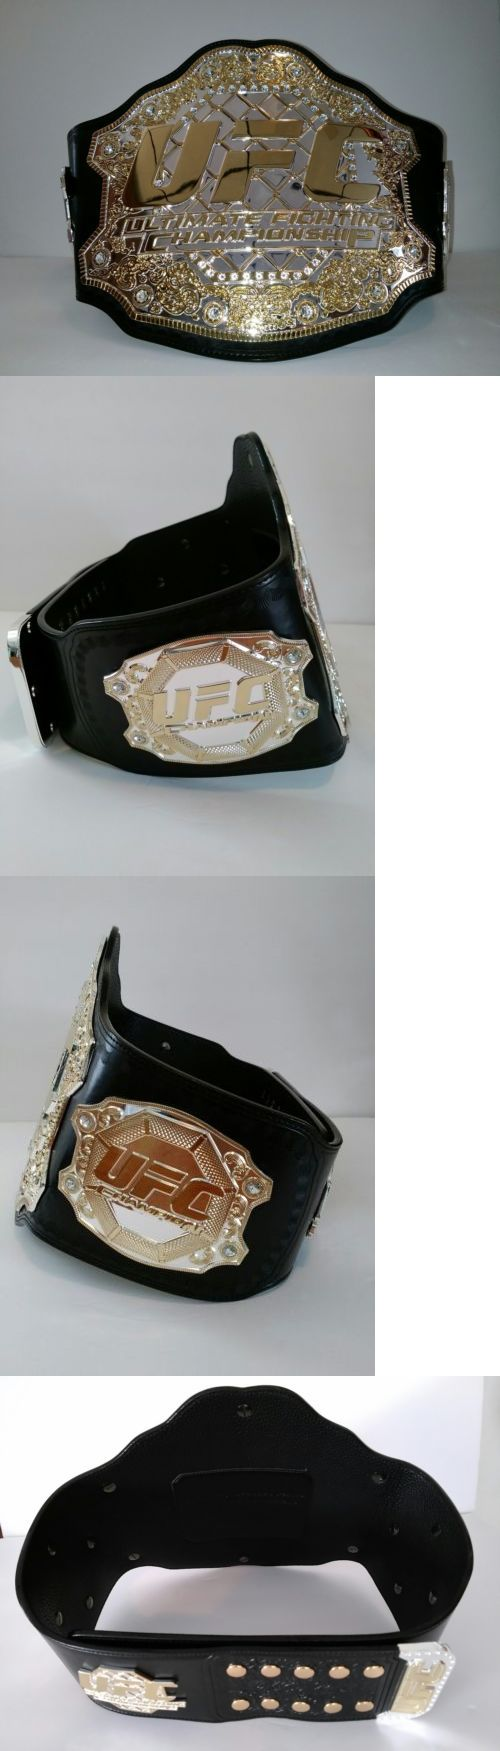 Mixed Martial Arts MMA 177913: Ufc Ultimate Fighting Championship Adult Replica Belt New Wec Tna Gloves Wwe -> BUY IT NOW ONLY: $399 on eBay!